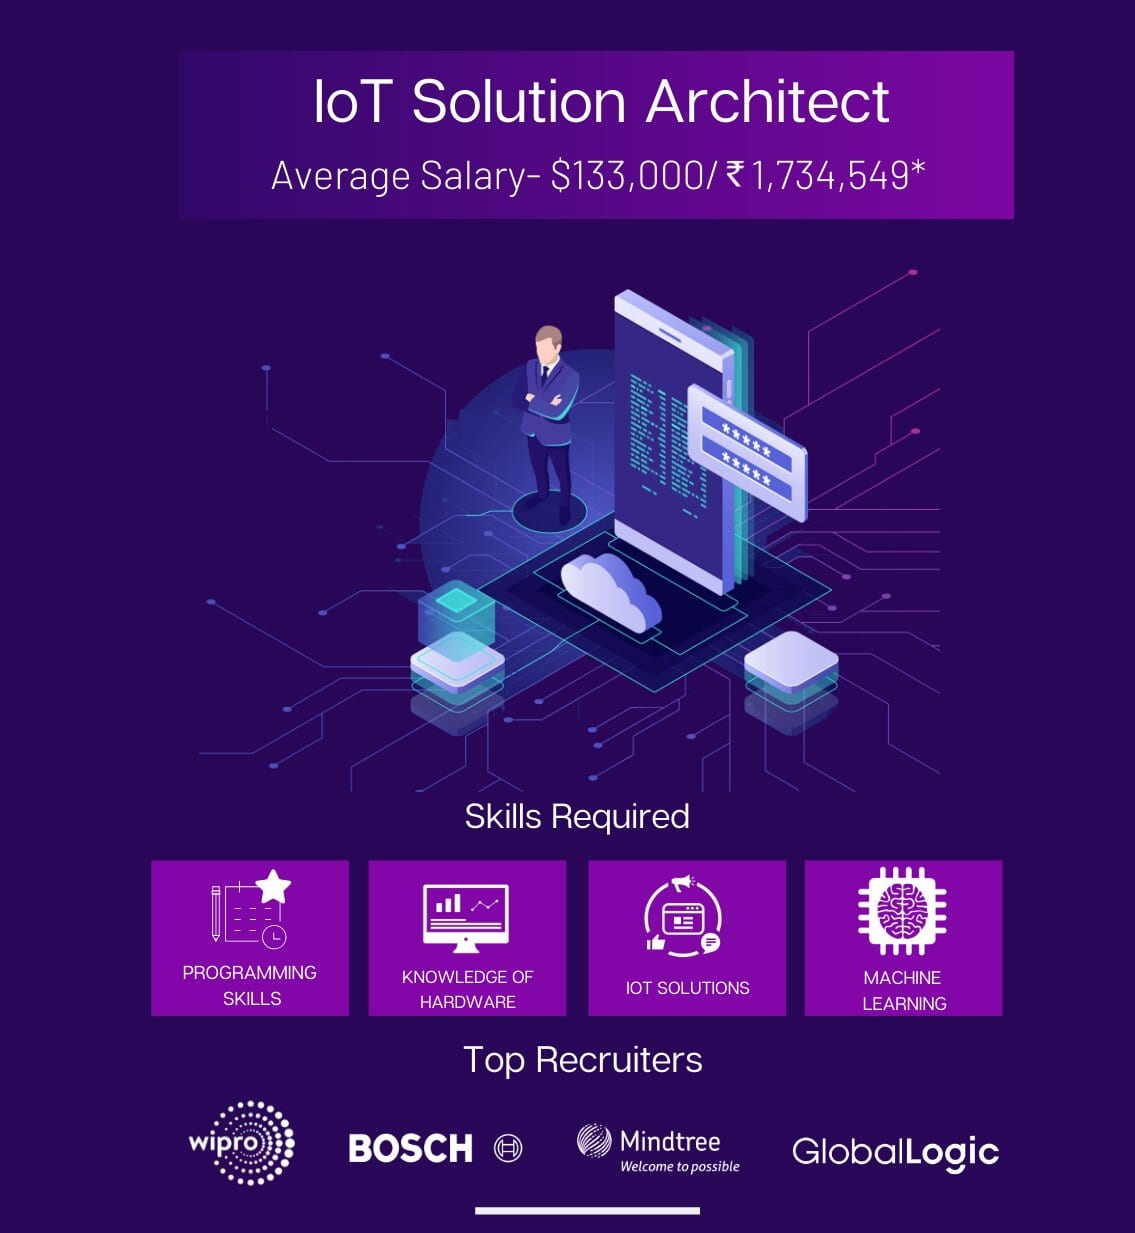 IoT Solution Architect